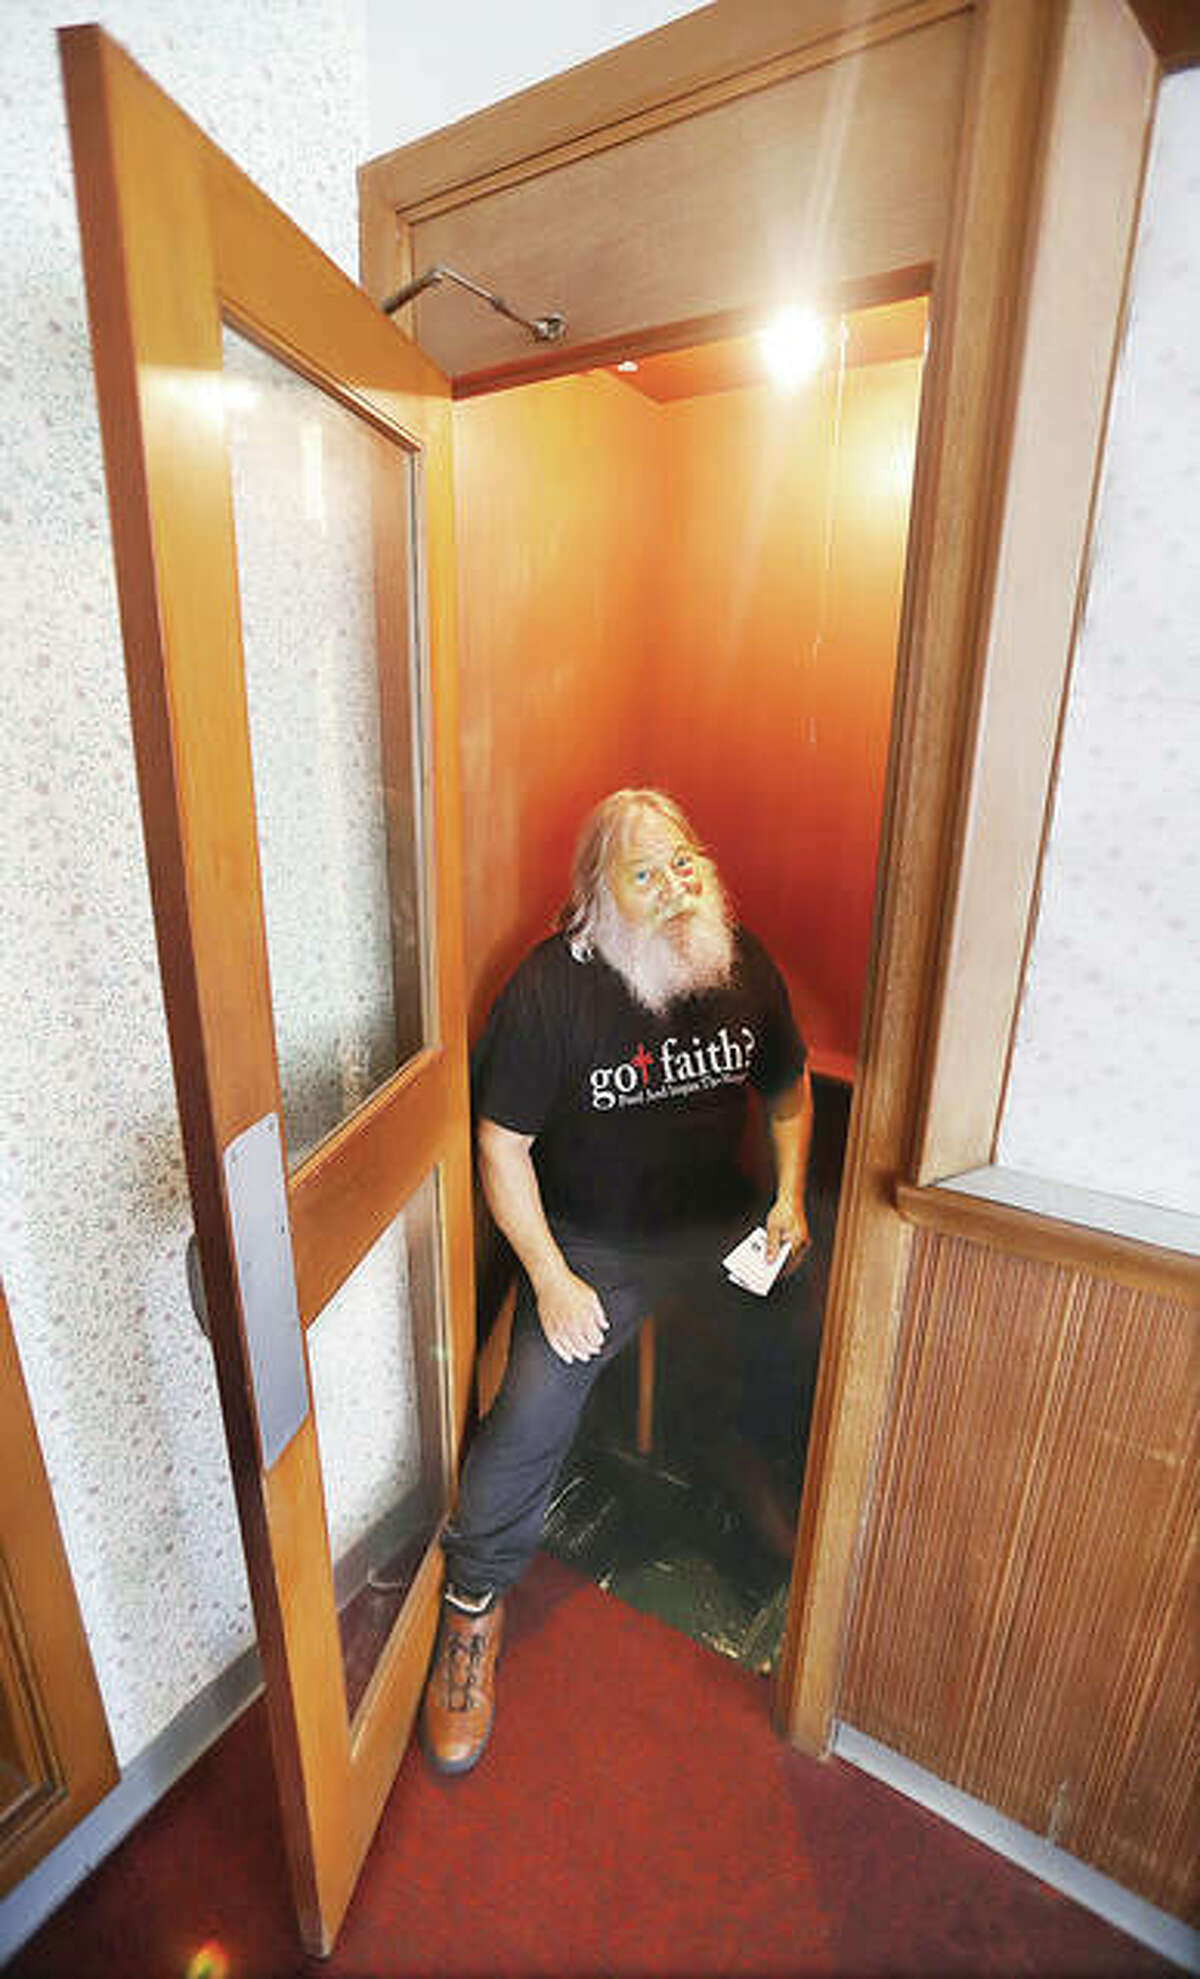 Steve Pegram sits in the built-in phone booth in the corner of lobby of a building donated last week to his ministry. Pegram said people remember the phone booth and ask him if it's still there; it is, but the phone is gone.